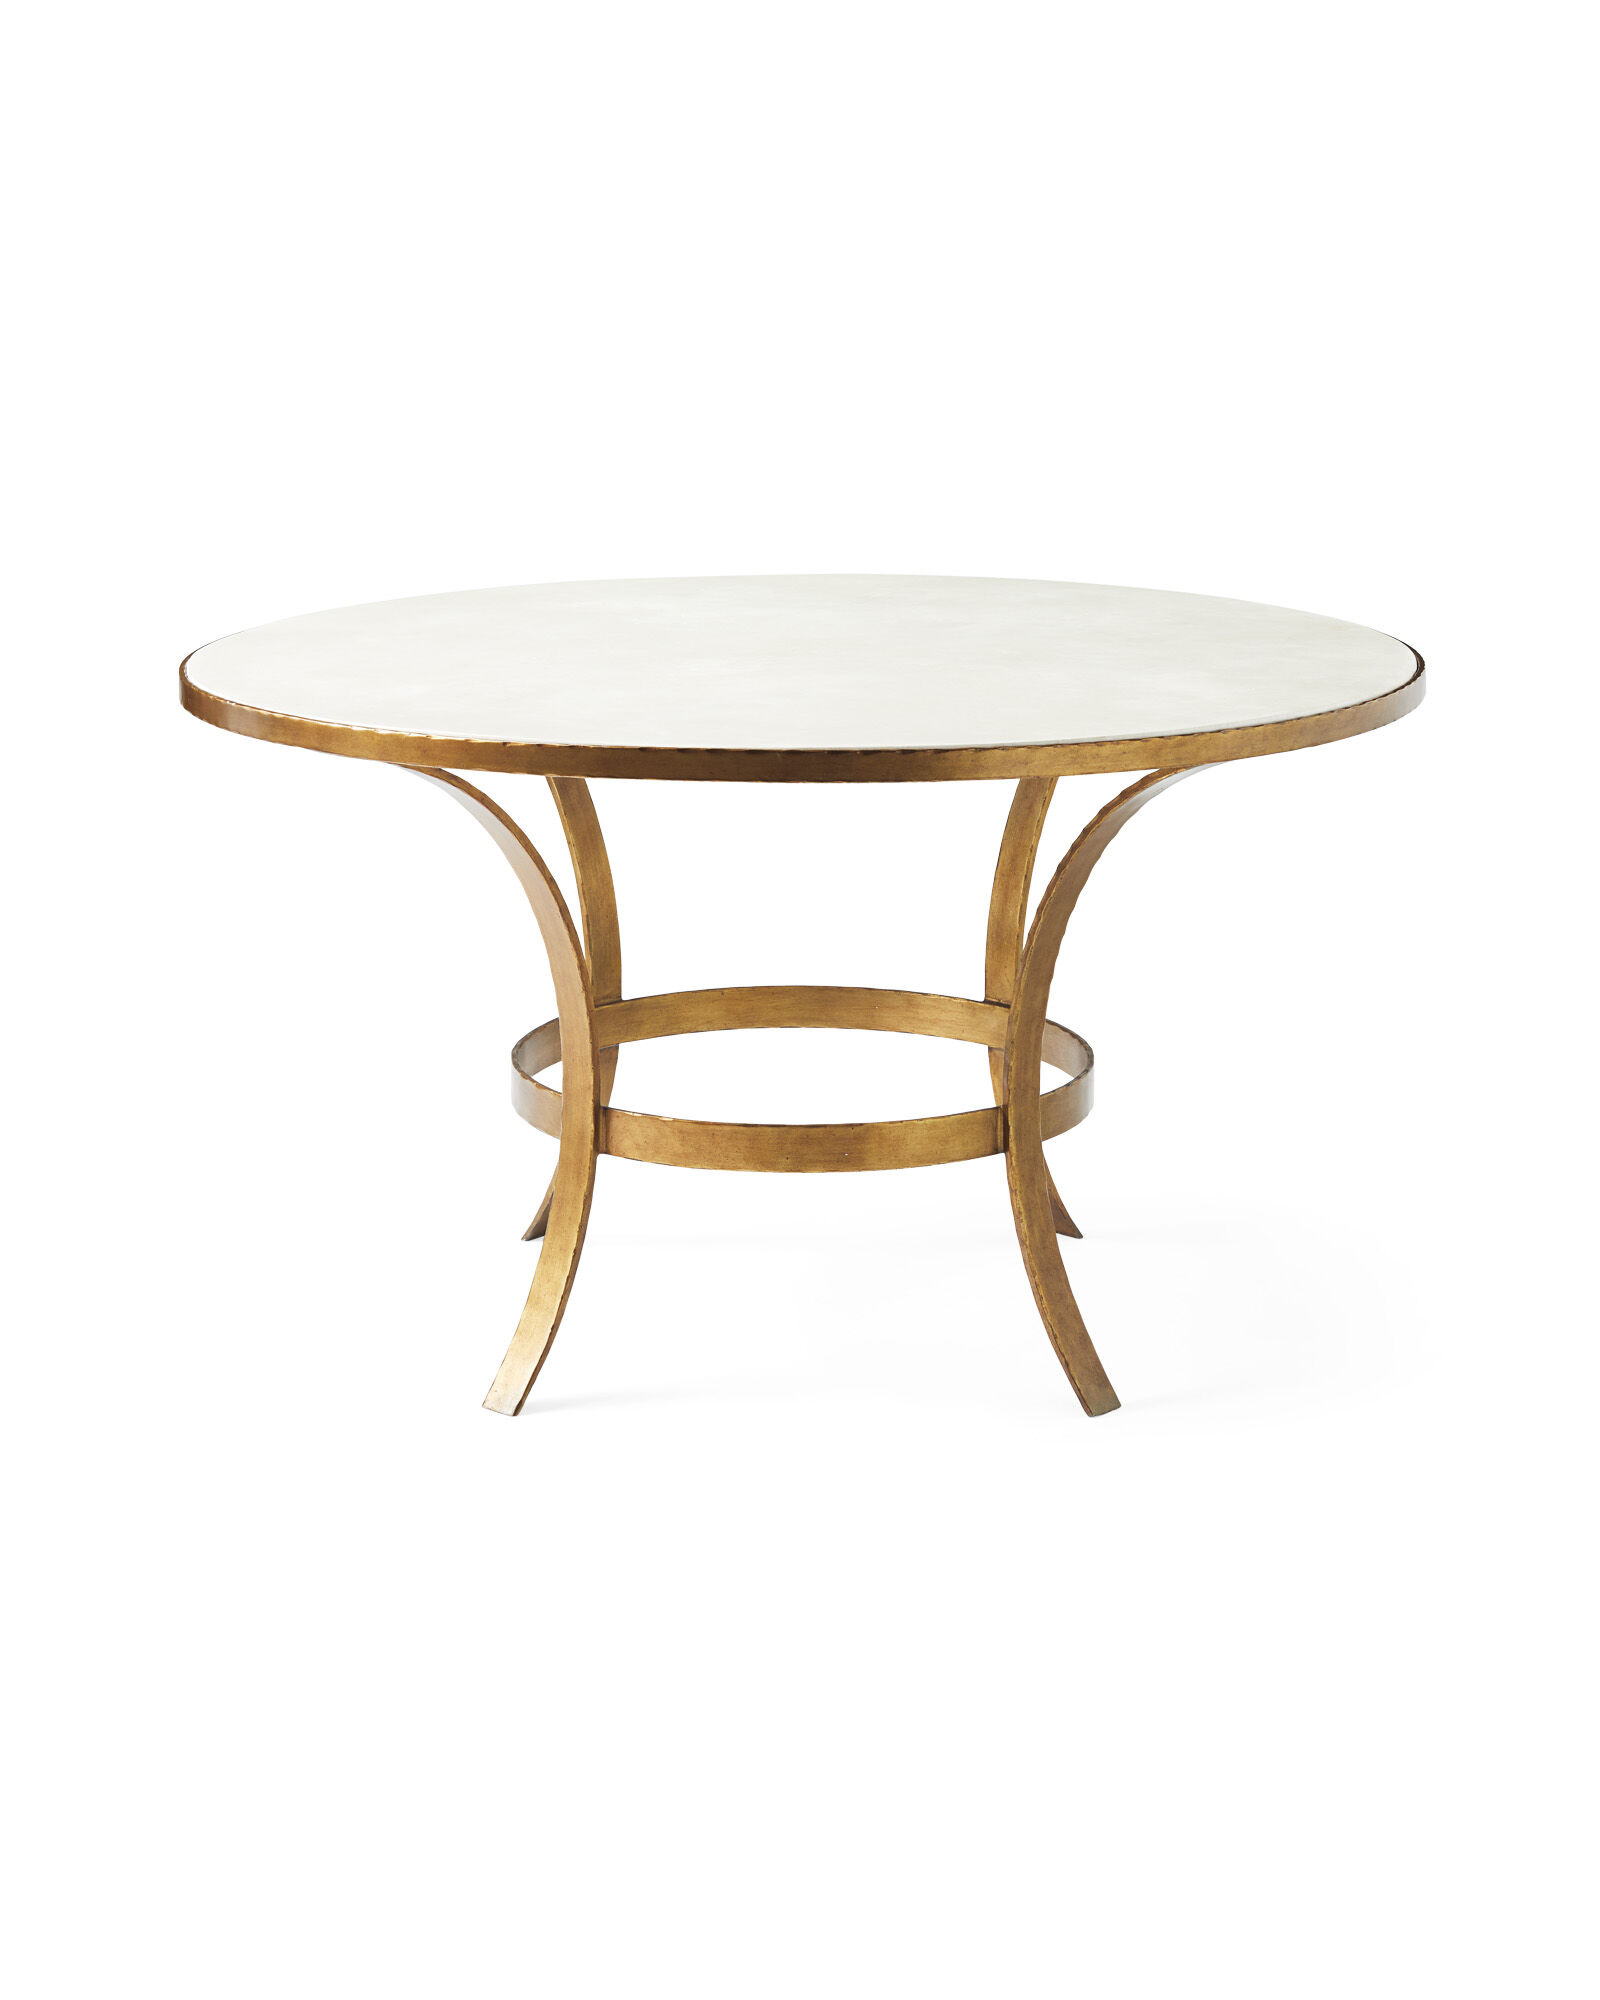 St. Germain Stone Dining Table